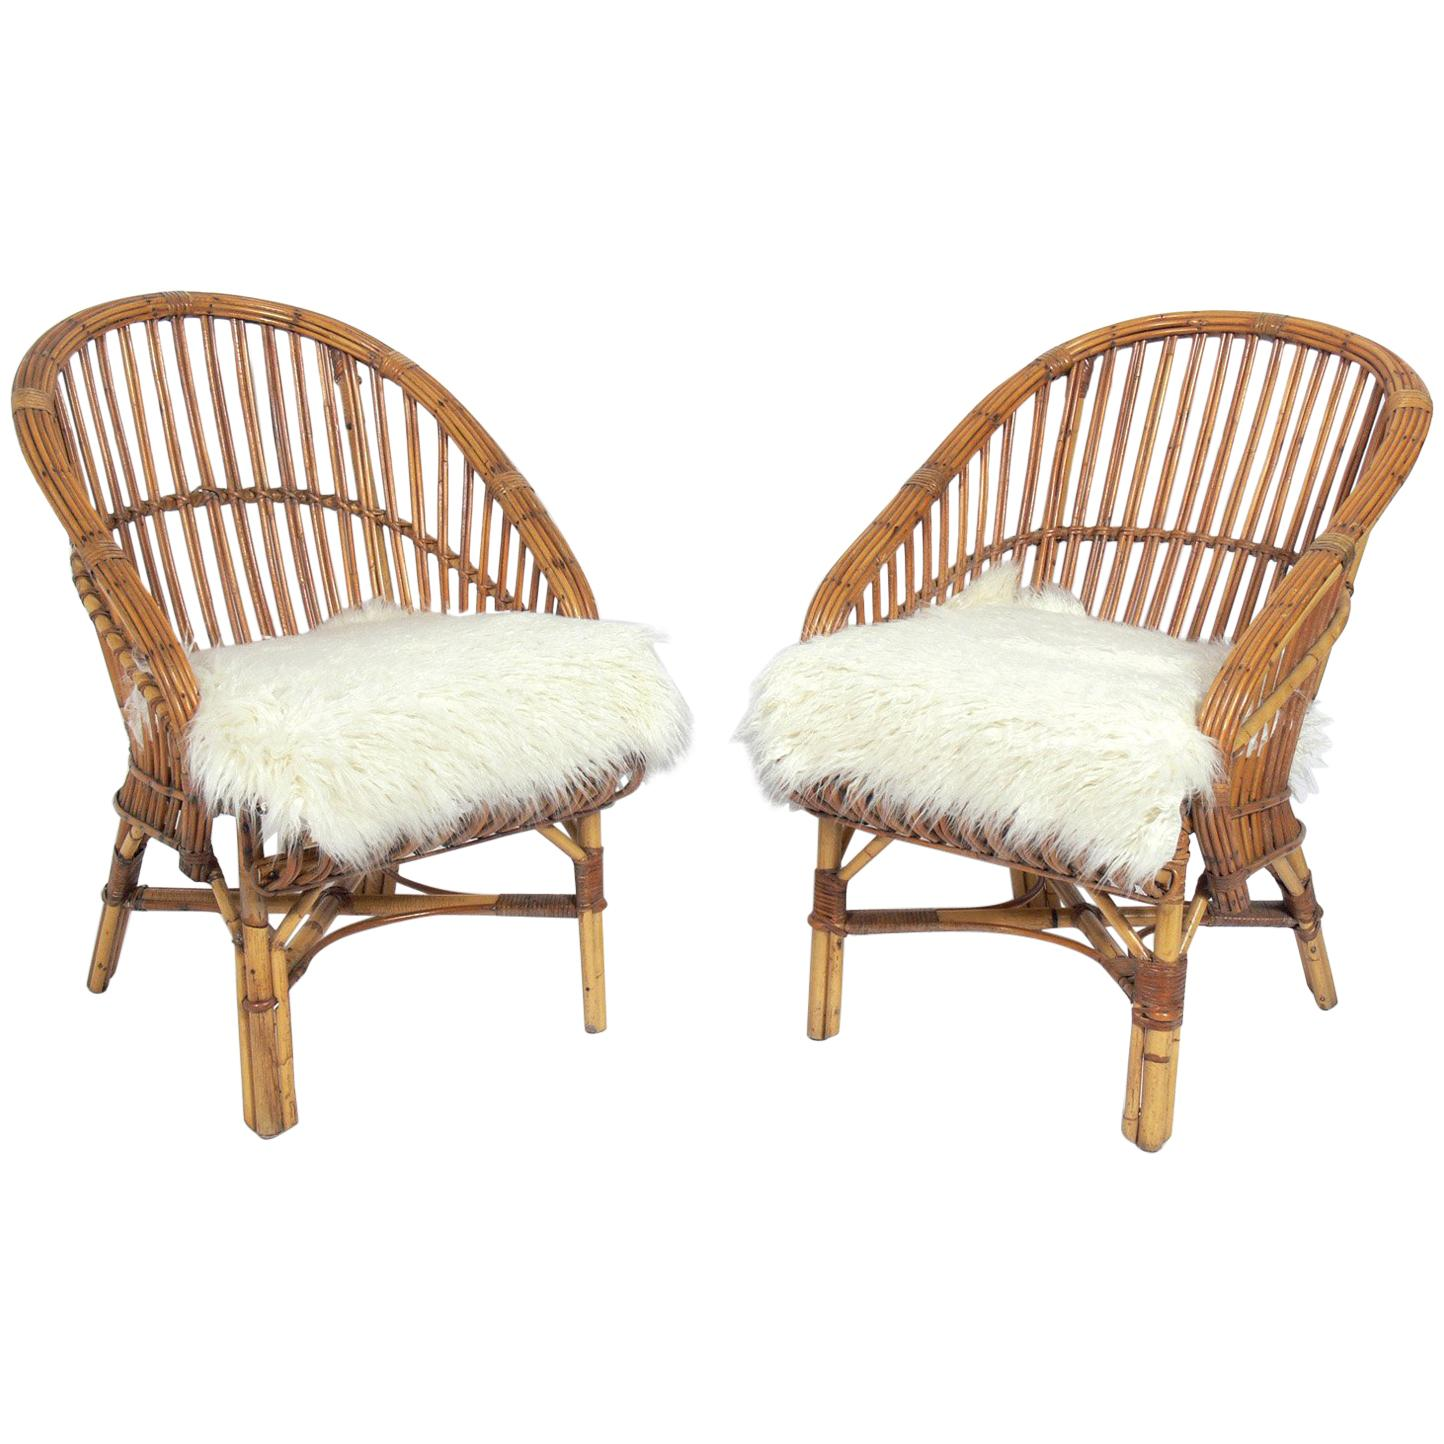 Pair of Curvaceous Rattan Chairs